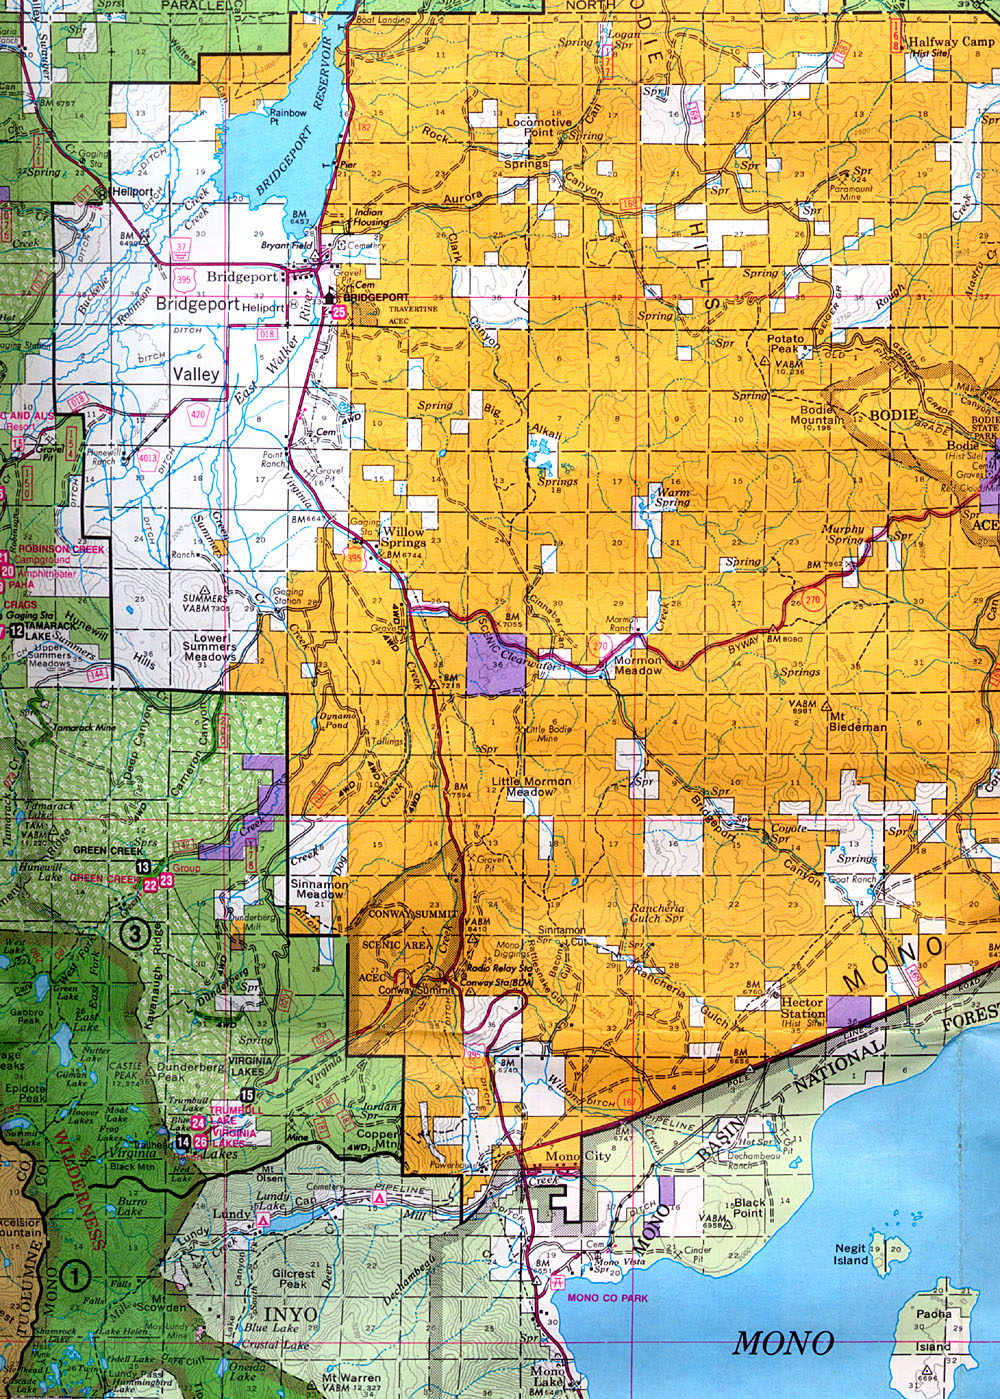 Buy And Find California Maps: Bureau Of Land Management: Northern - Deer Hunting Zones In California Maps